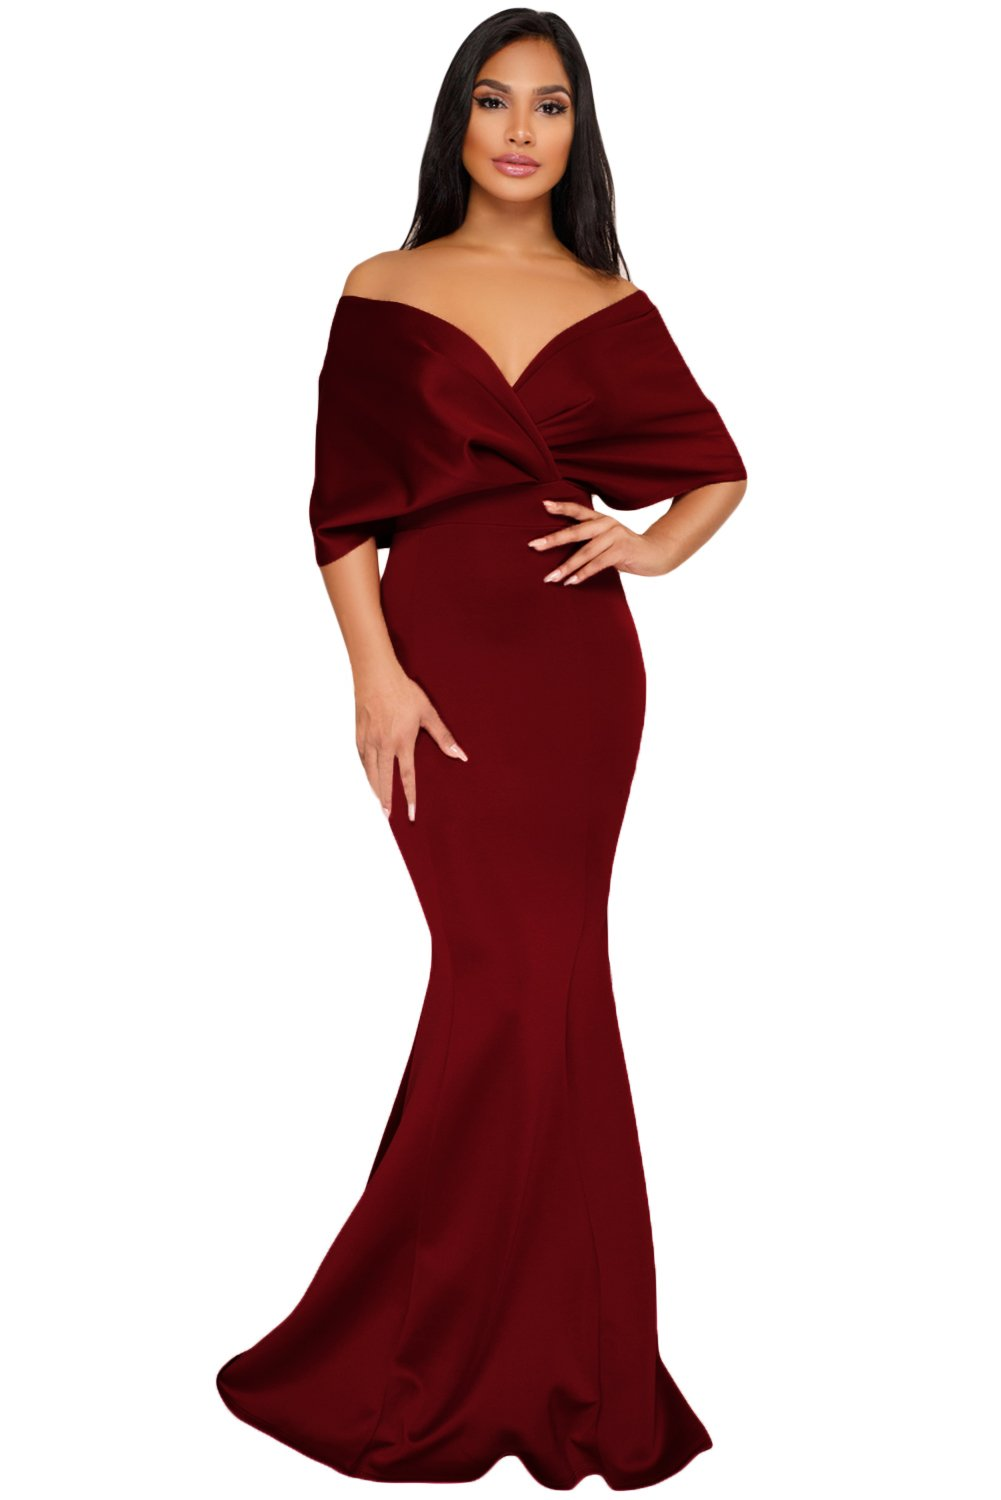 Elegant maxi dresses for weddings  Red Off The Shoulder Mermaid Maxi Dress Size US S by